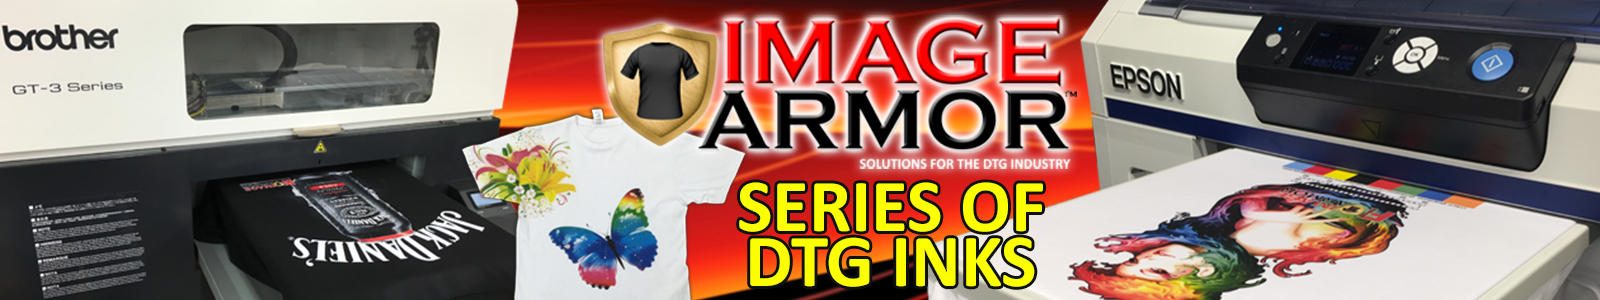 Image Armor Direct To Garment Series of DTG Inks